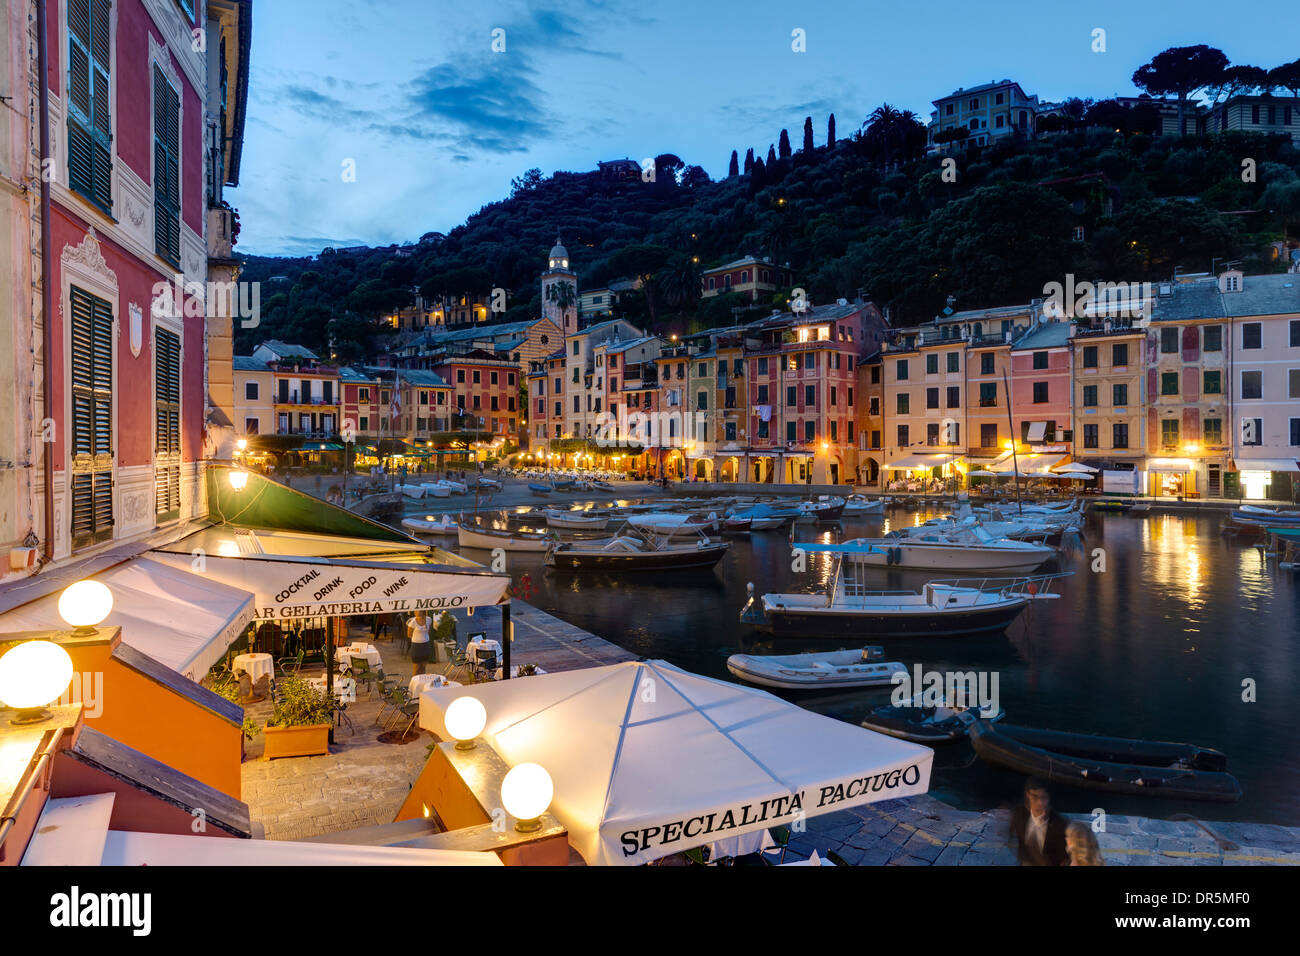 Italy, Liguria, Portofino, Boats in harbour at blue hour - Stock Image